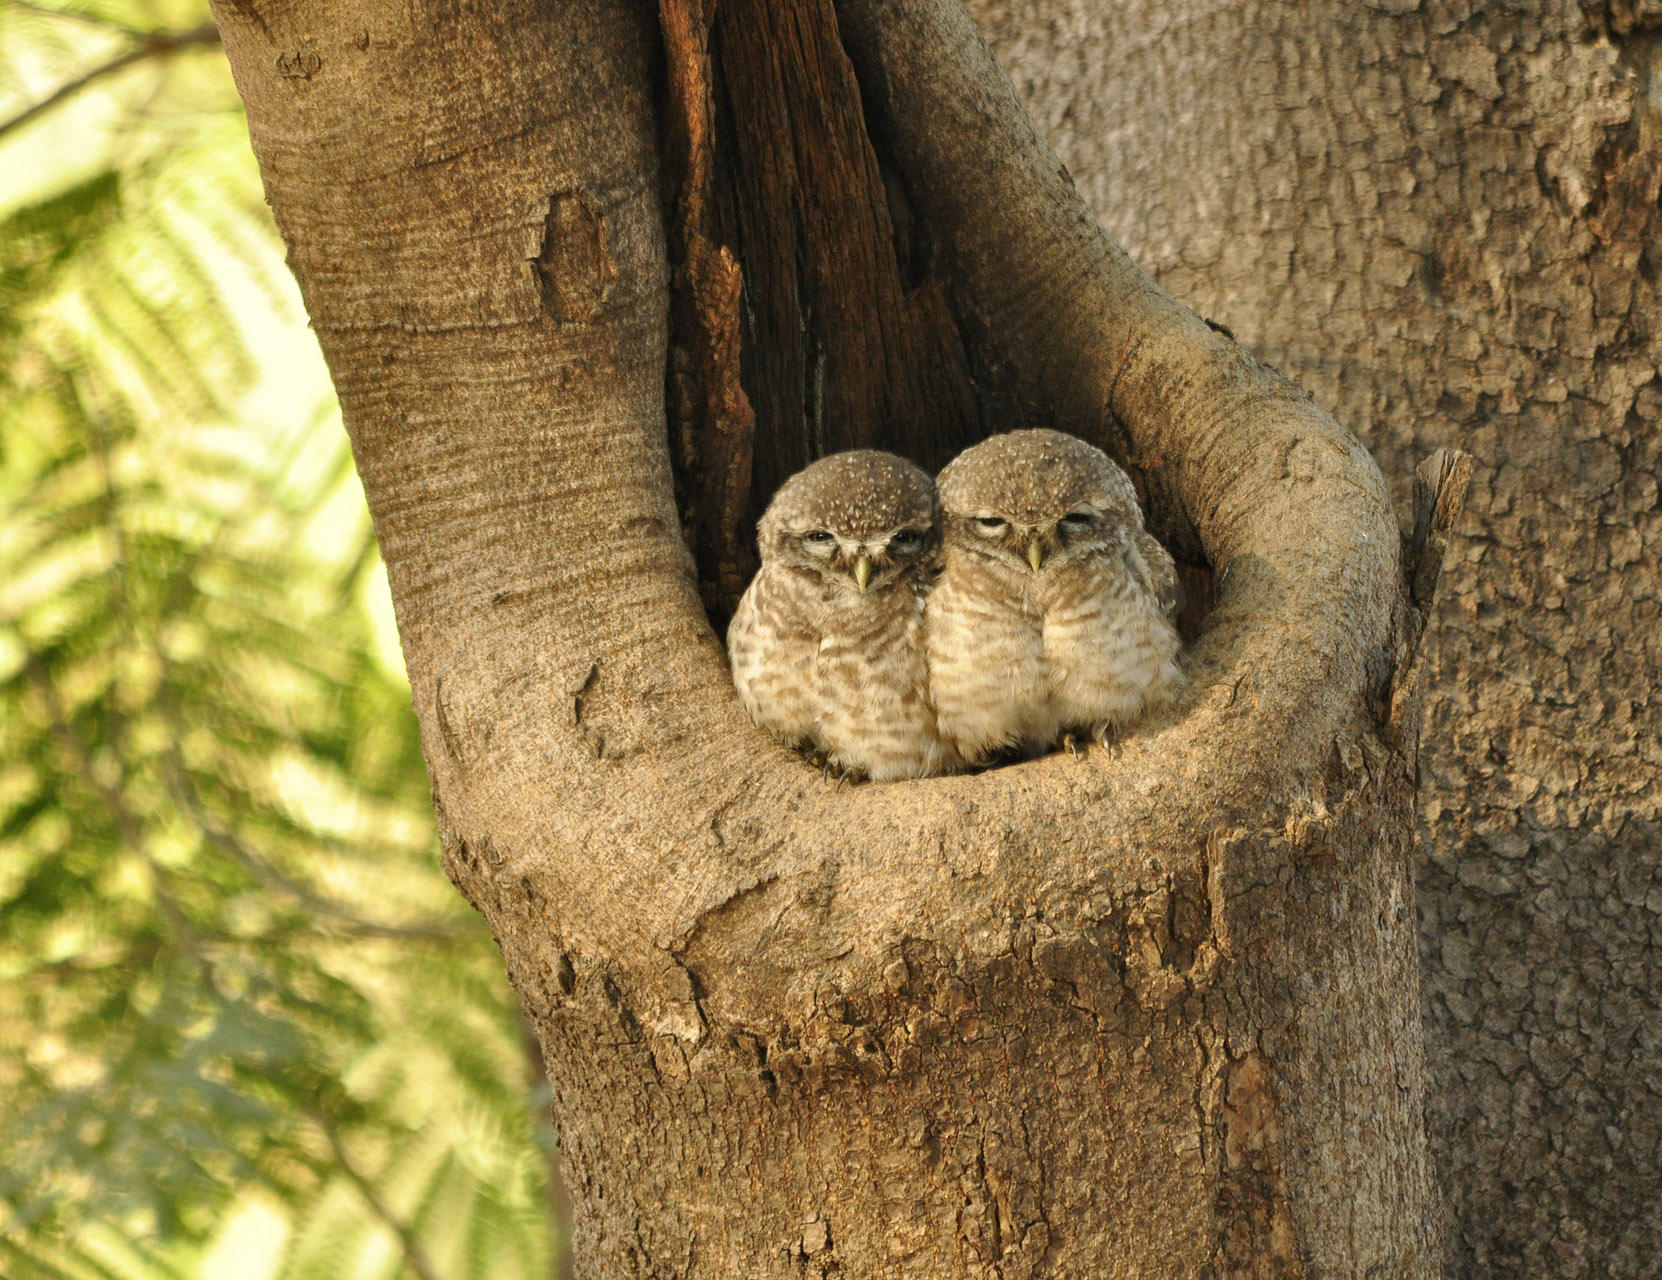 Urban jungles provide birdwatching spots for spotted owlets